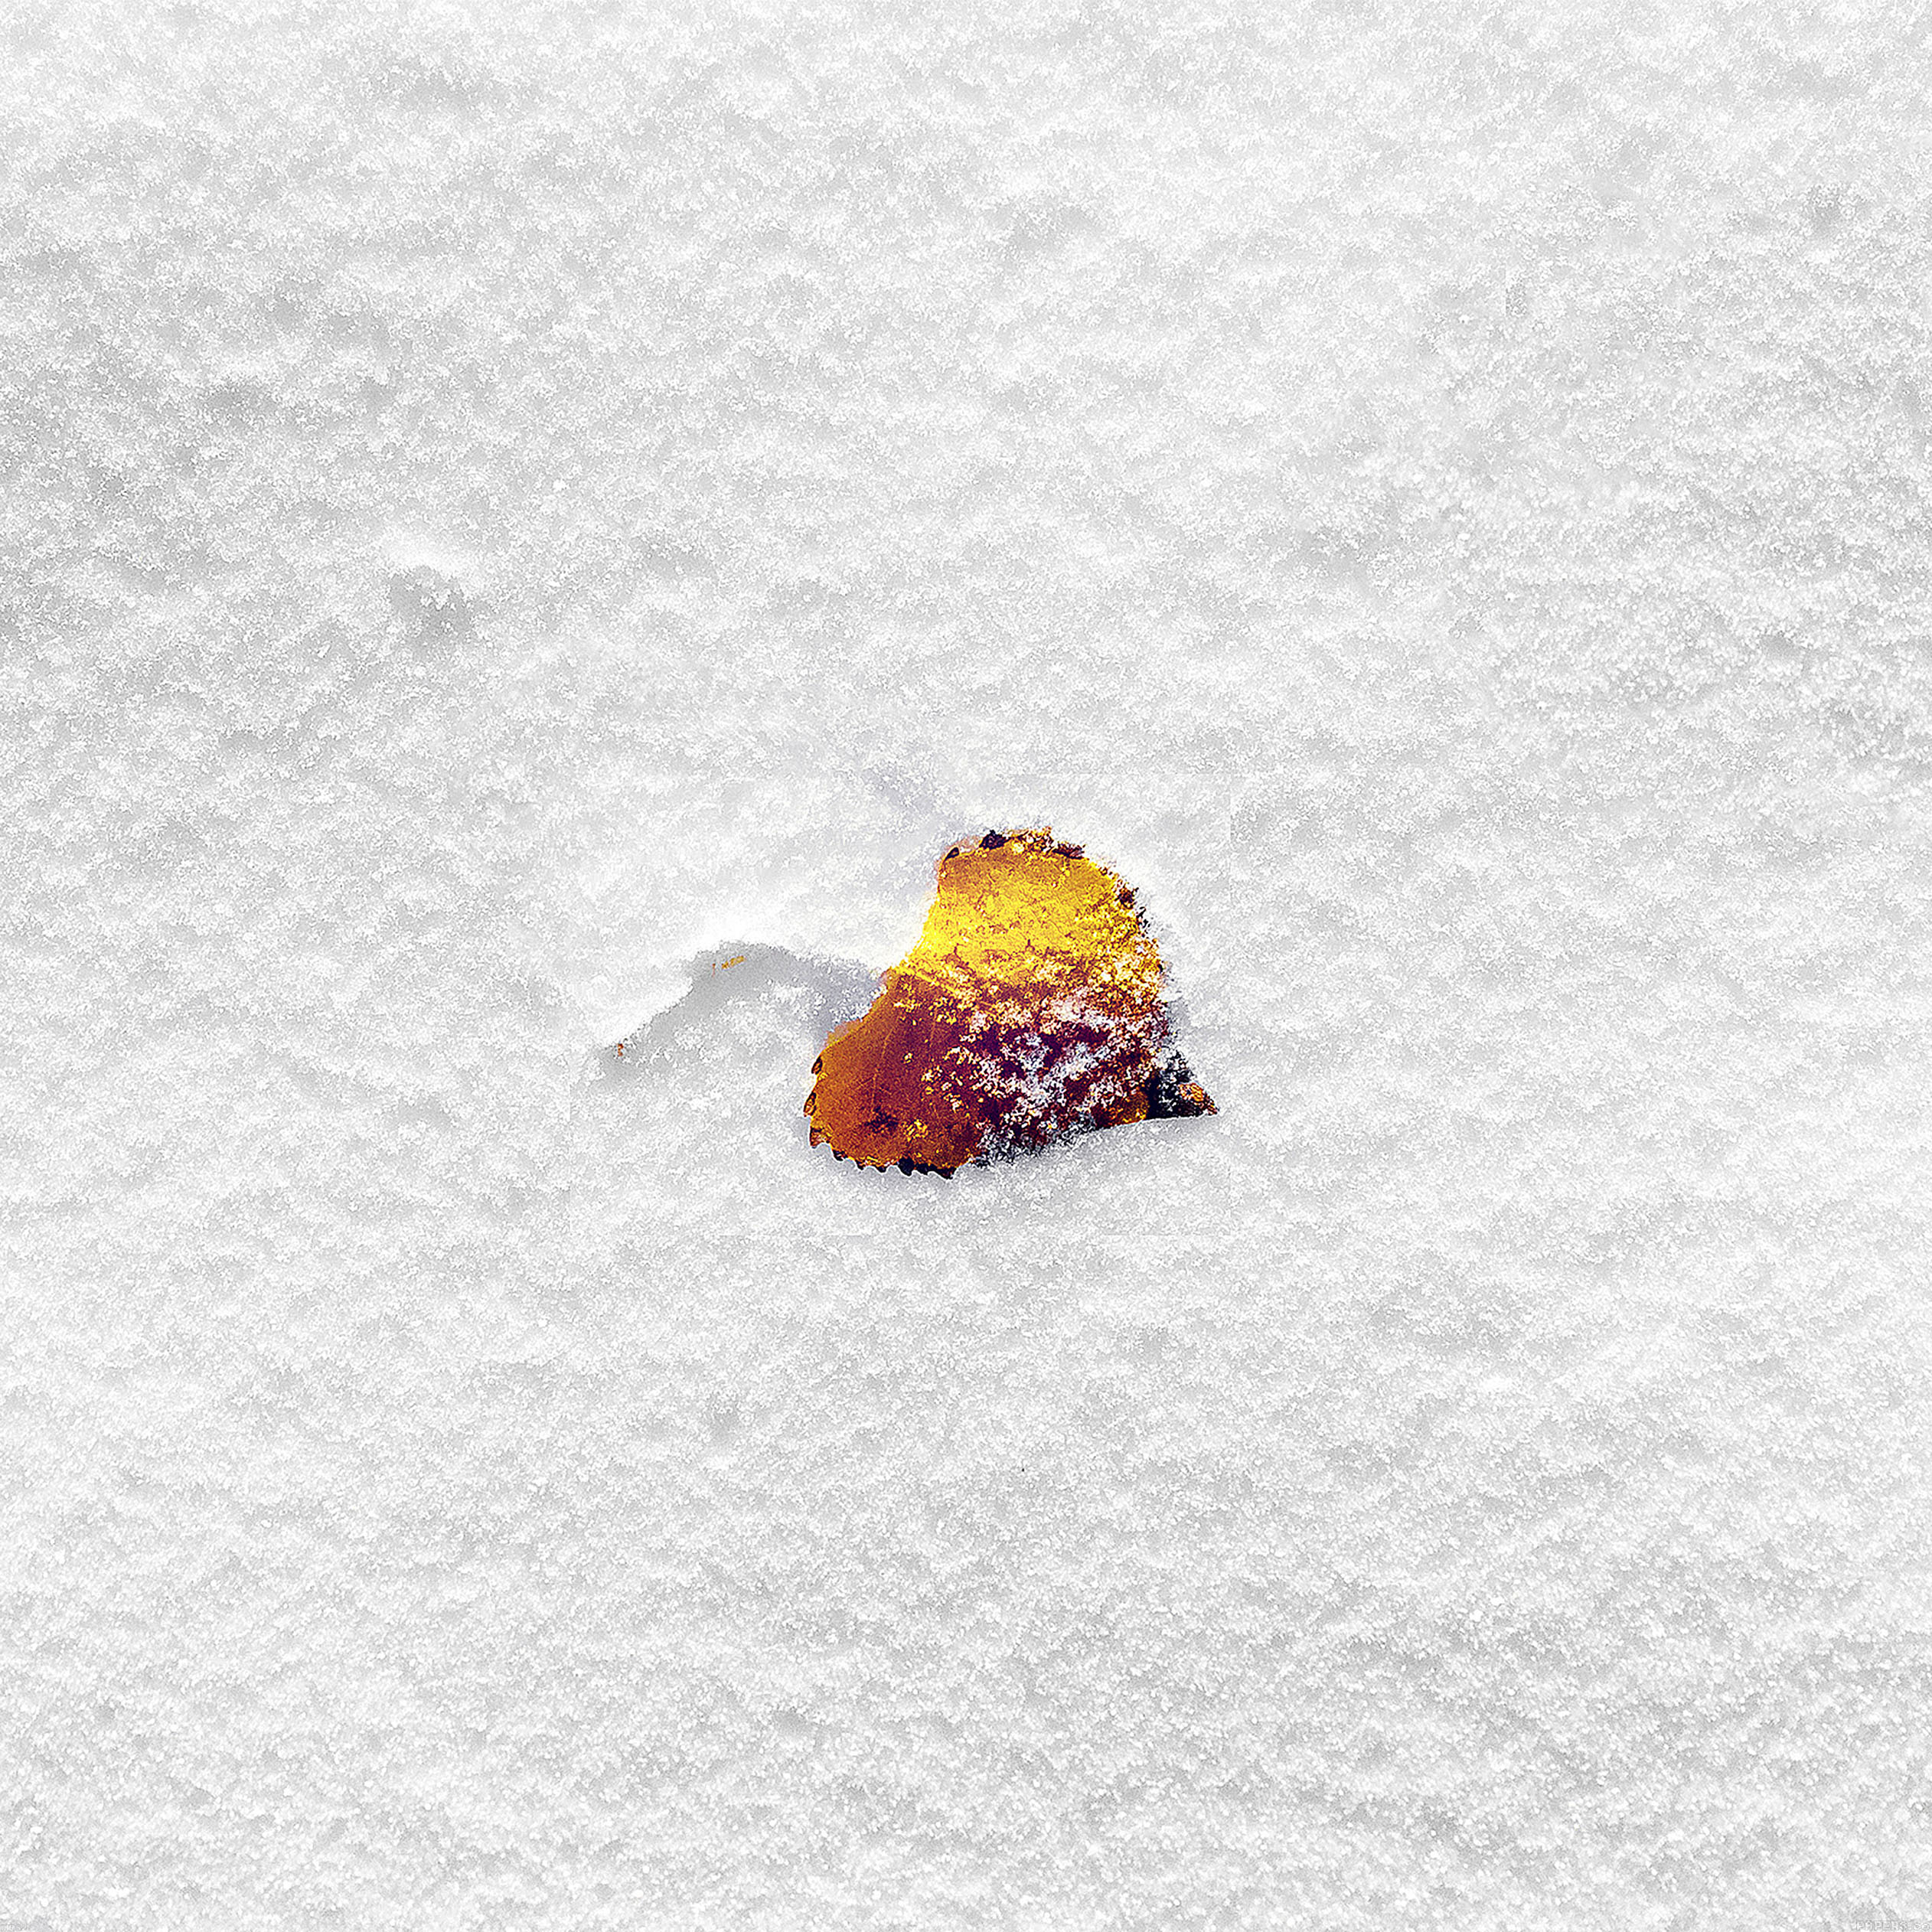 wallpaper-boo-201-snow-leaf-9-wallpaper